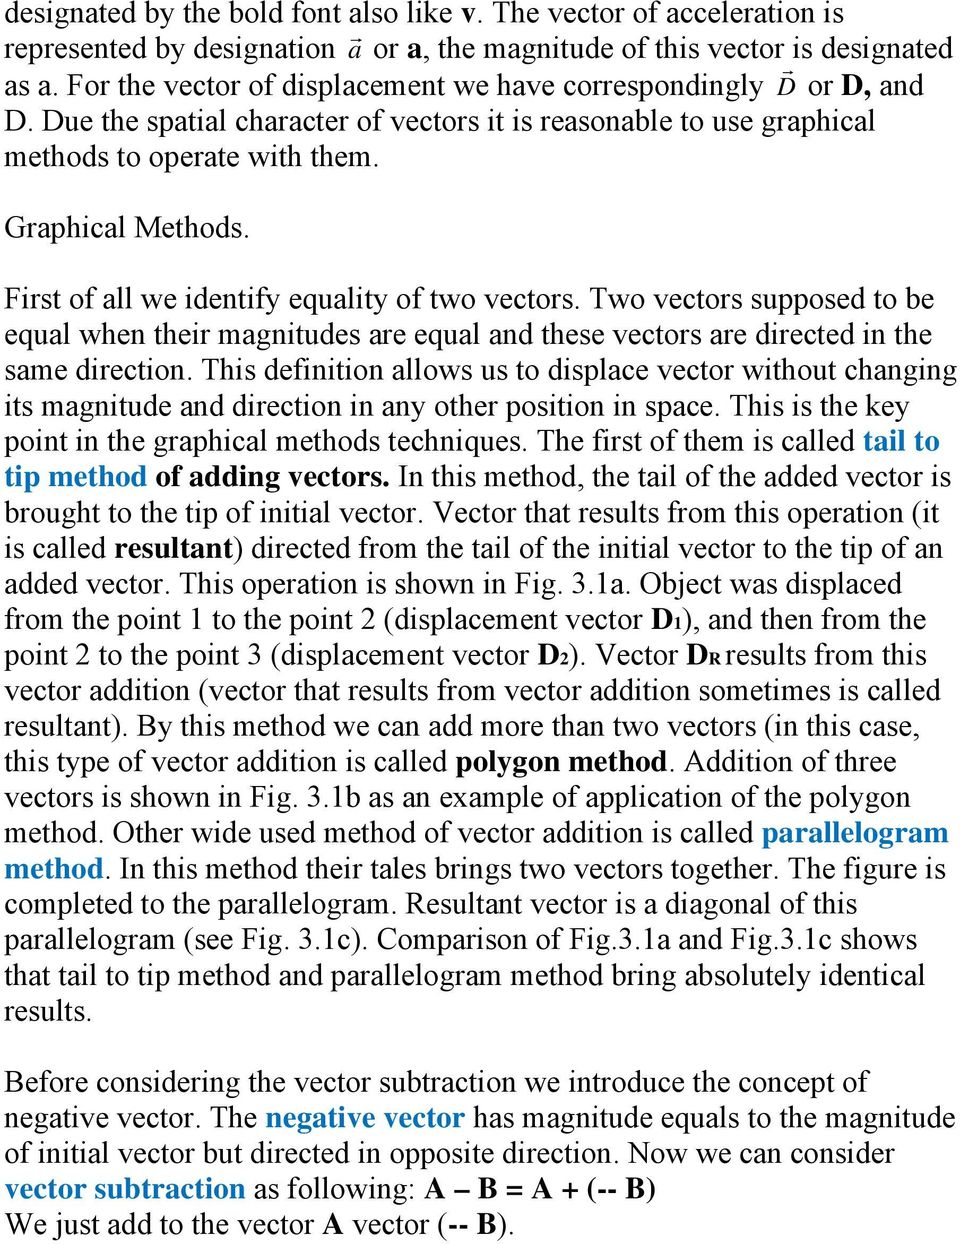 First of all we identify equality of two vectors. Two vectors supposed to be equal when their magnitudes are equal and these vectors are directed in the same direction.